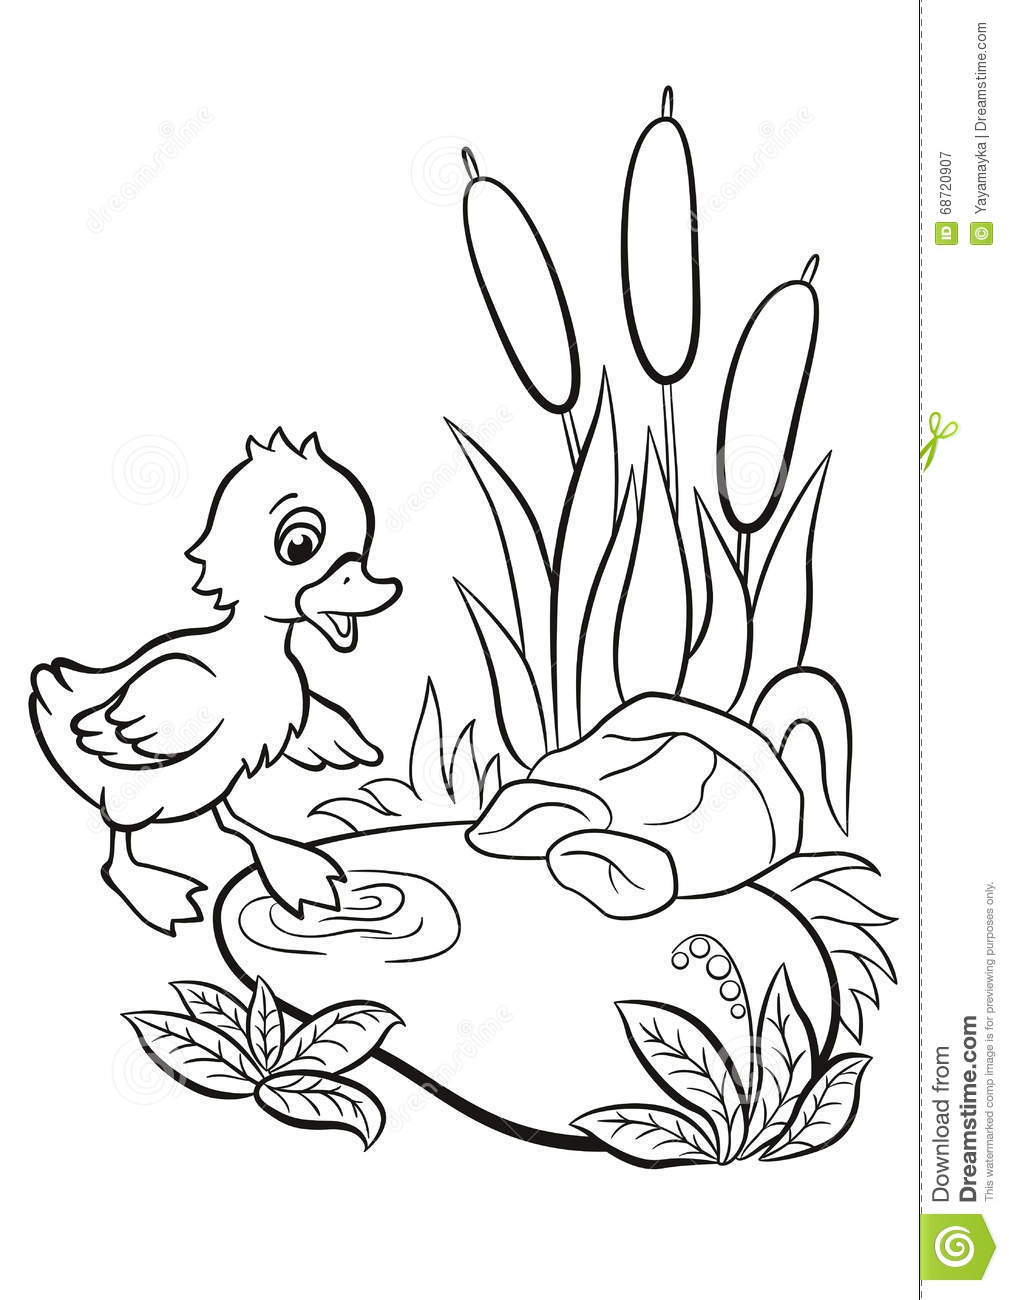 Little Cute Duckling Tries To Go To The Pond. Stock Vector